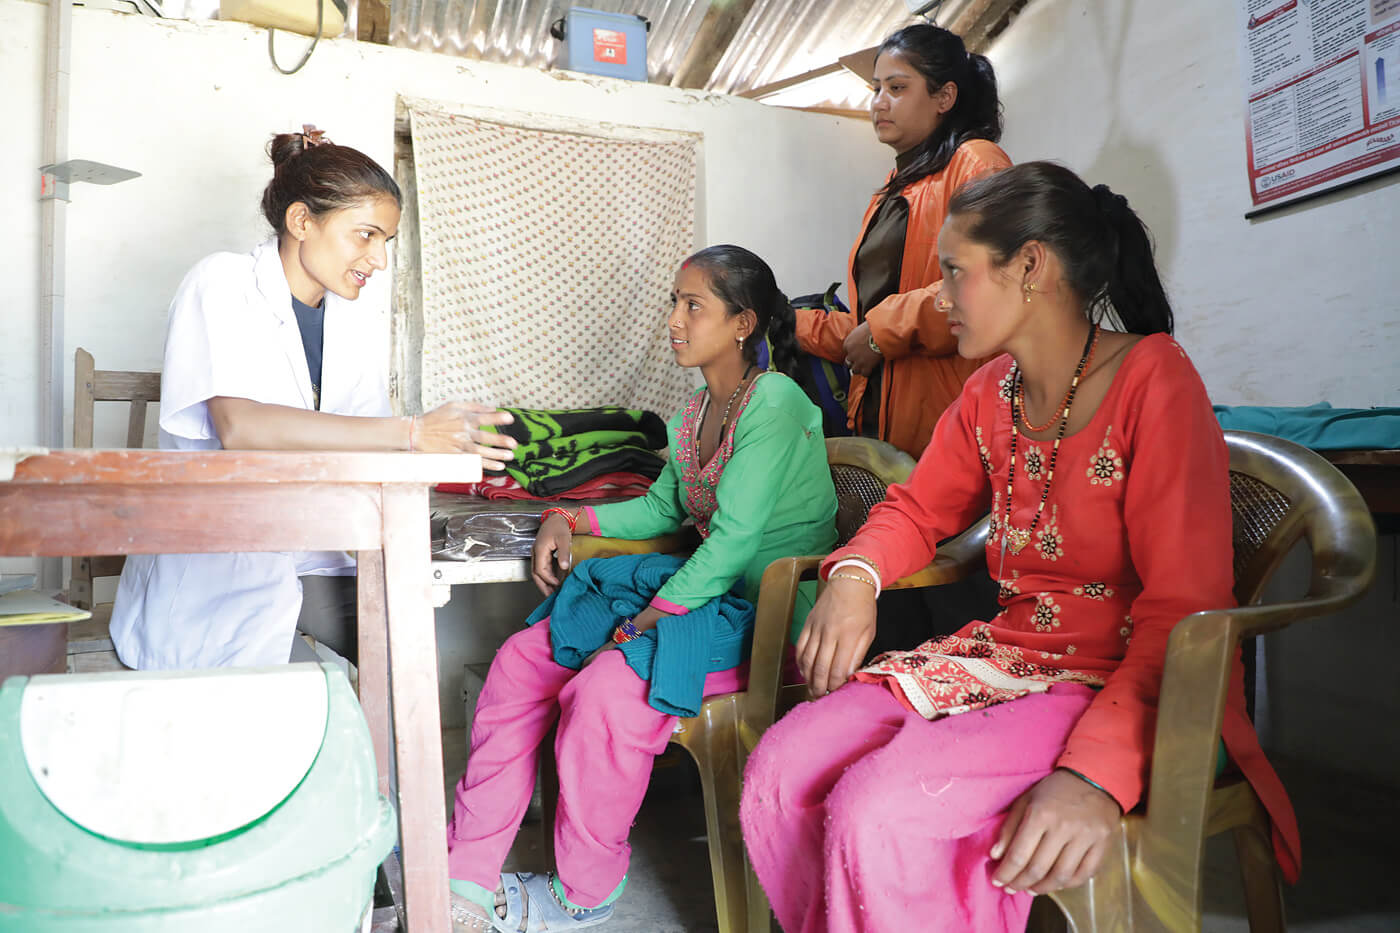 Implant service providers take contraception to Nepal's poor